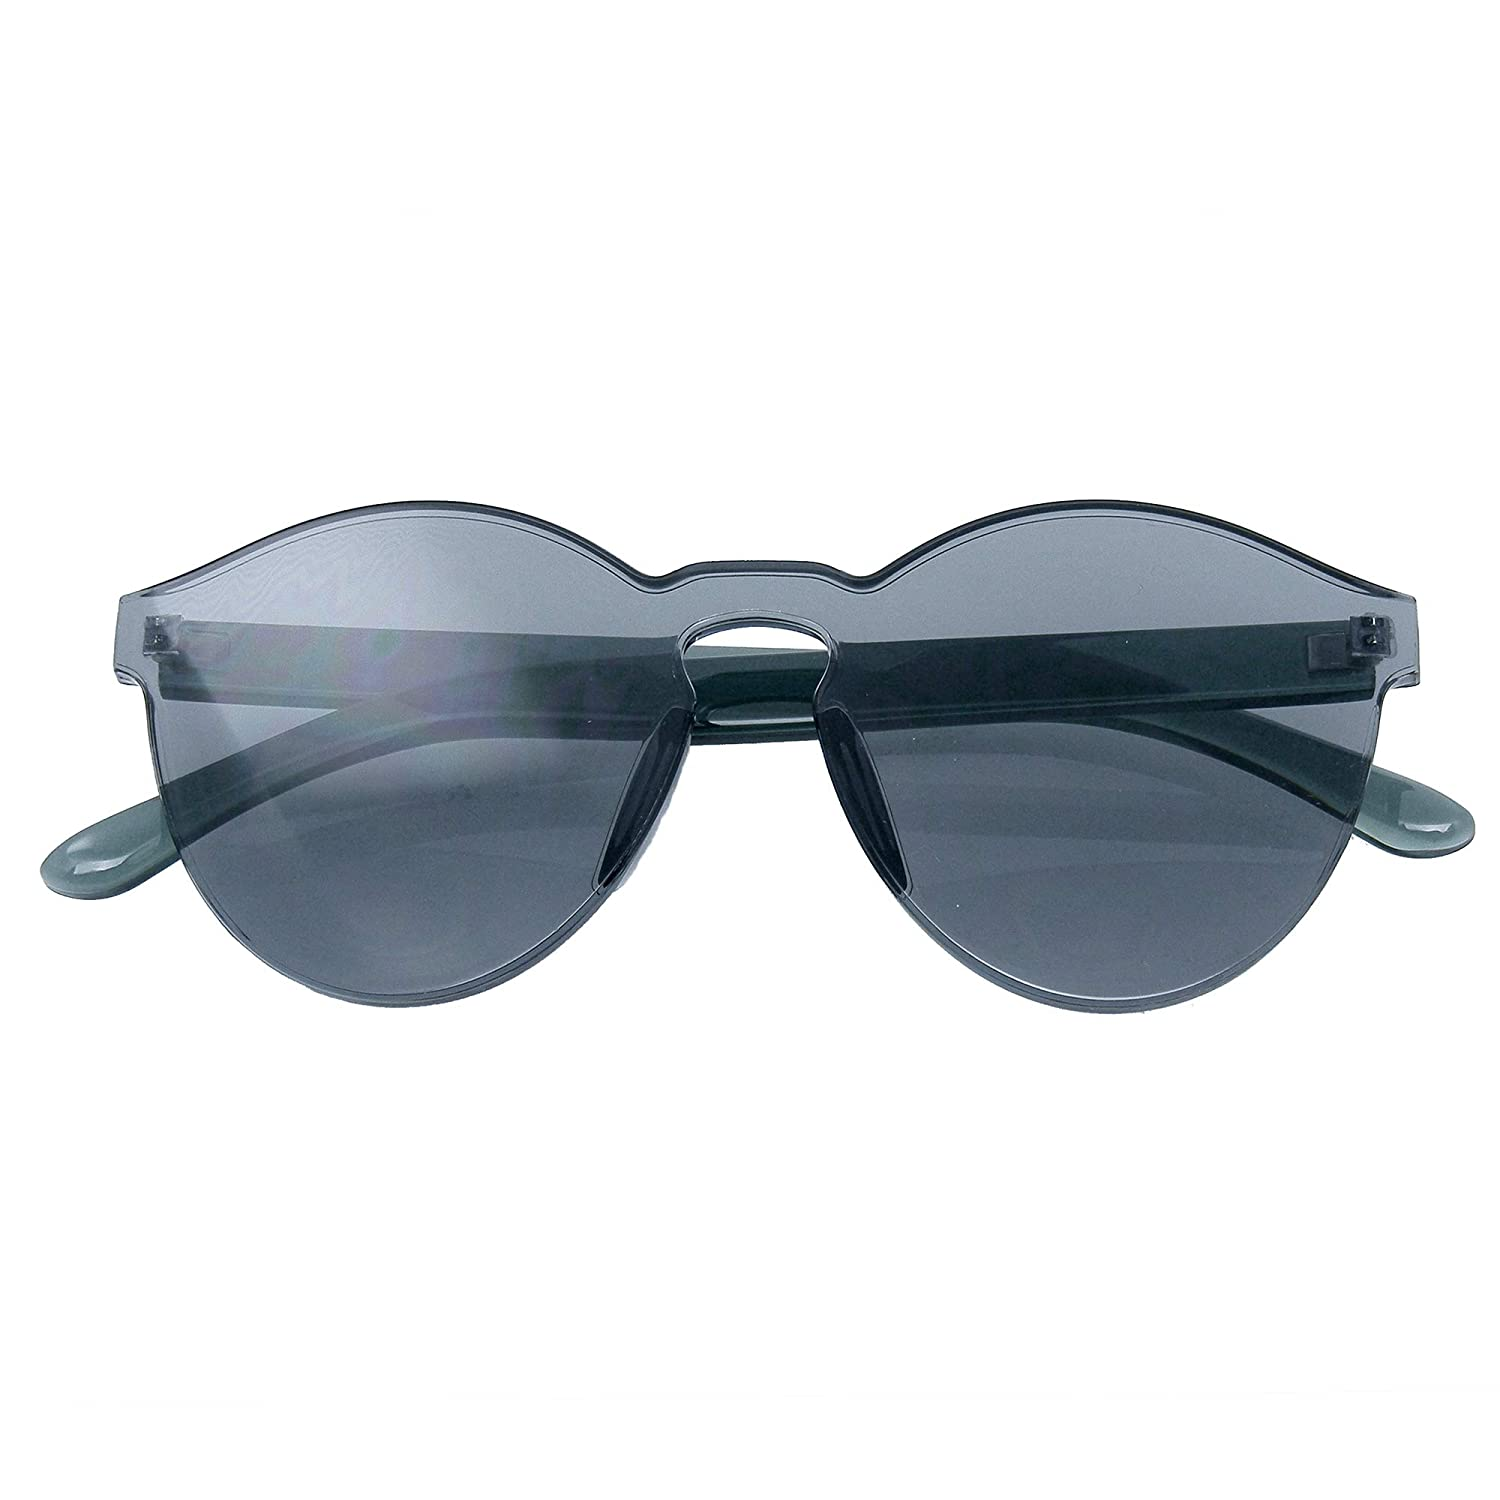 039d59bce9 Colorful One Piece Rimless Transparent Sunglasses Women Tinted Candy  Colored Glasses (Black)  Amazon.co.uk  Clothing